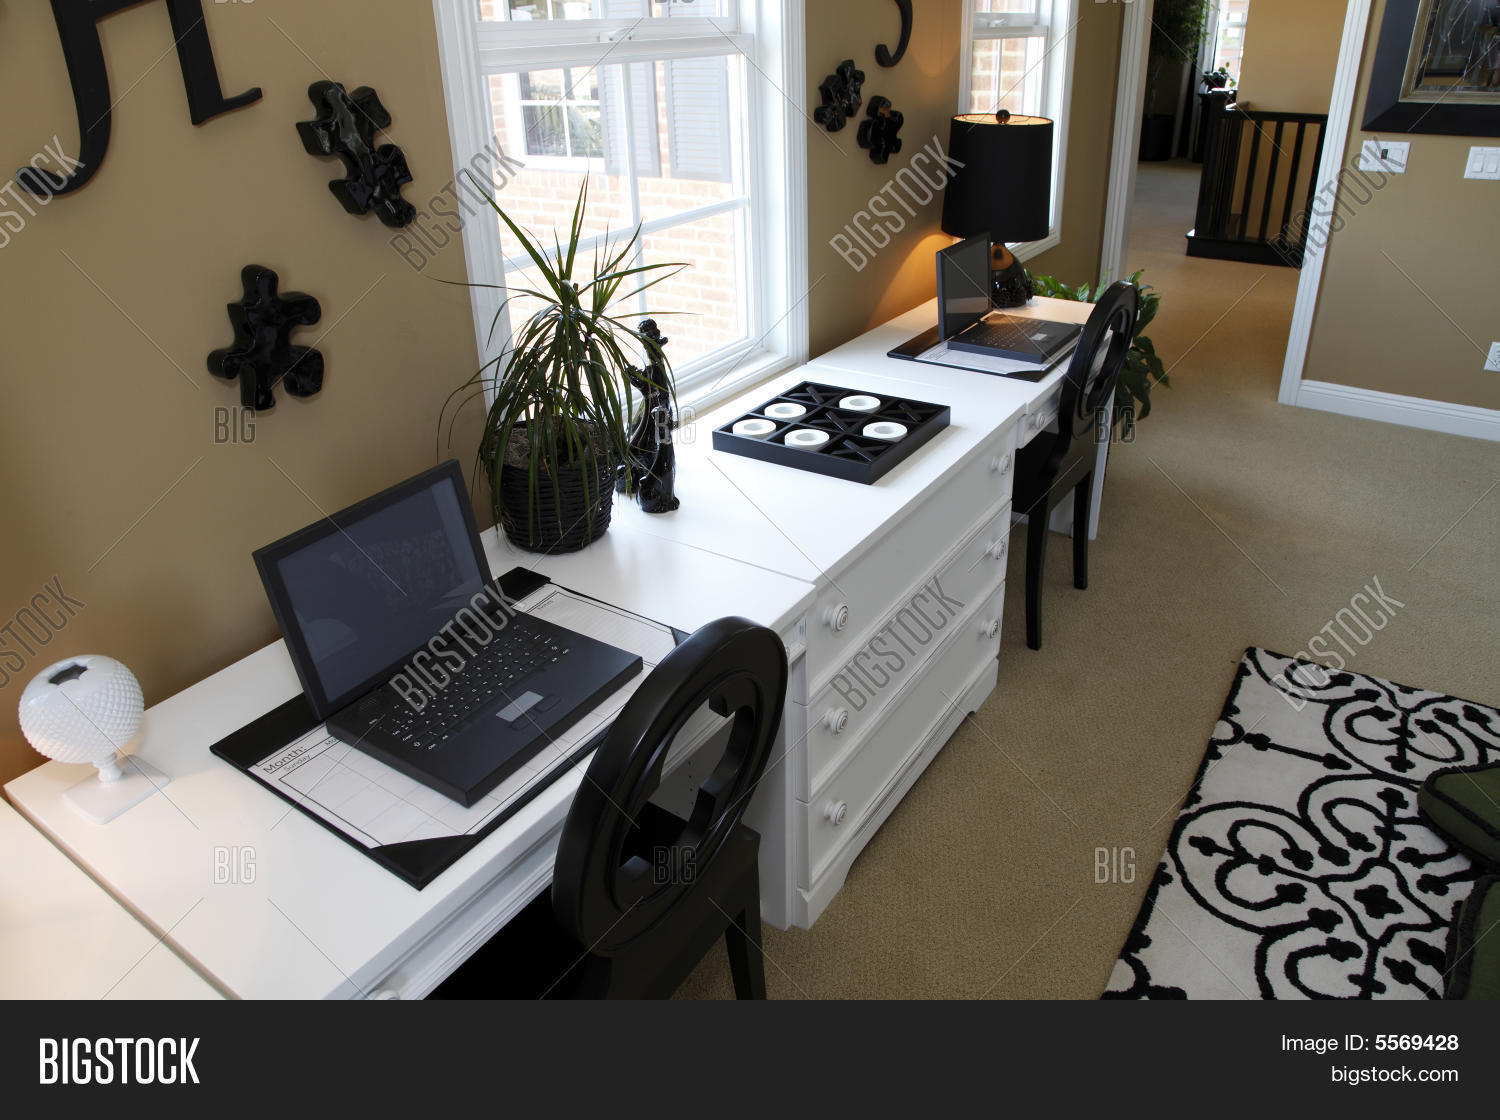 🔥 Residential office with laptops - 5569428 image & stock photo